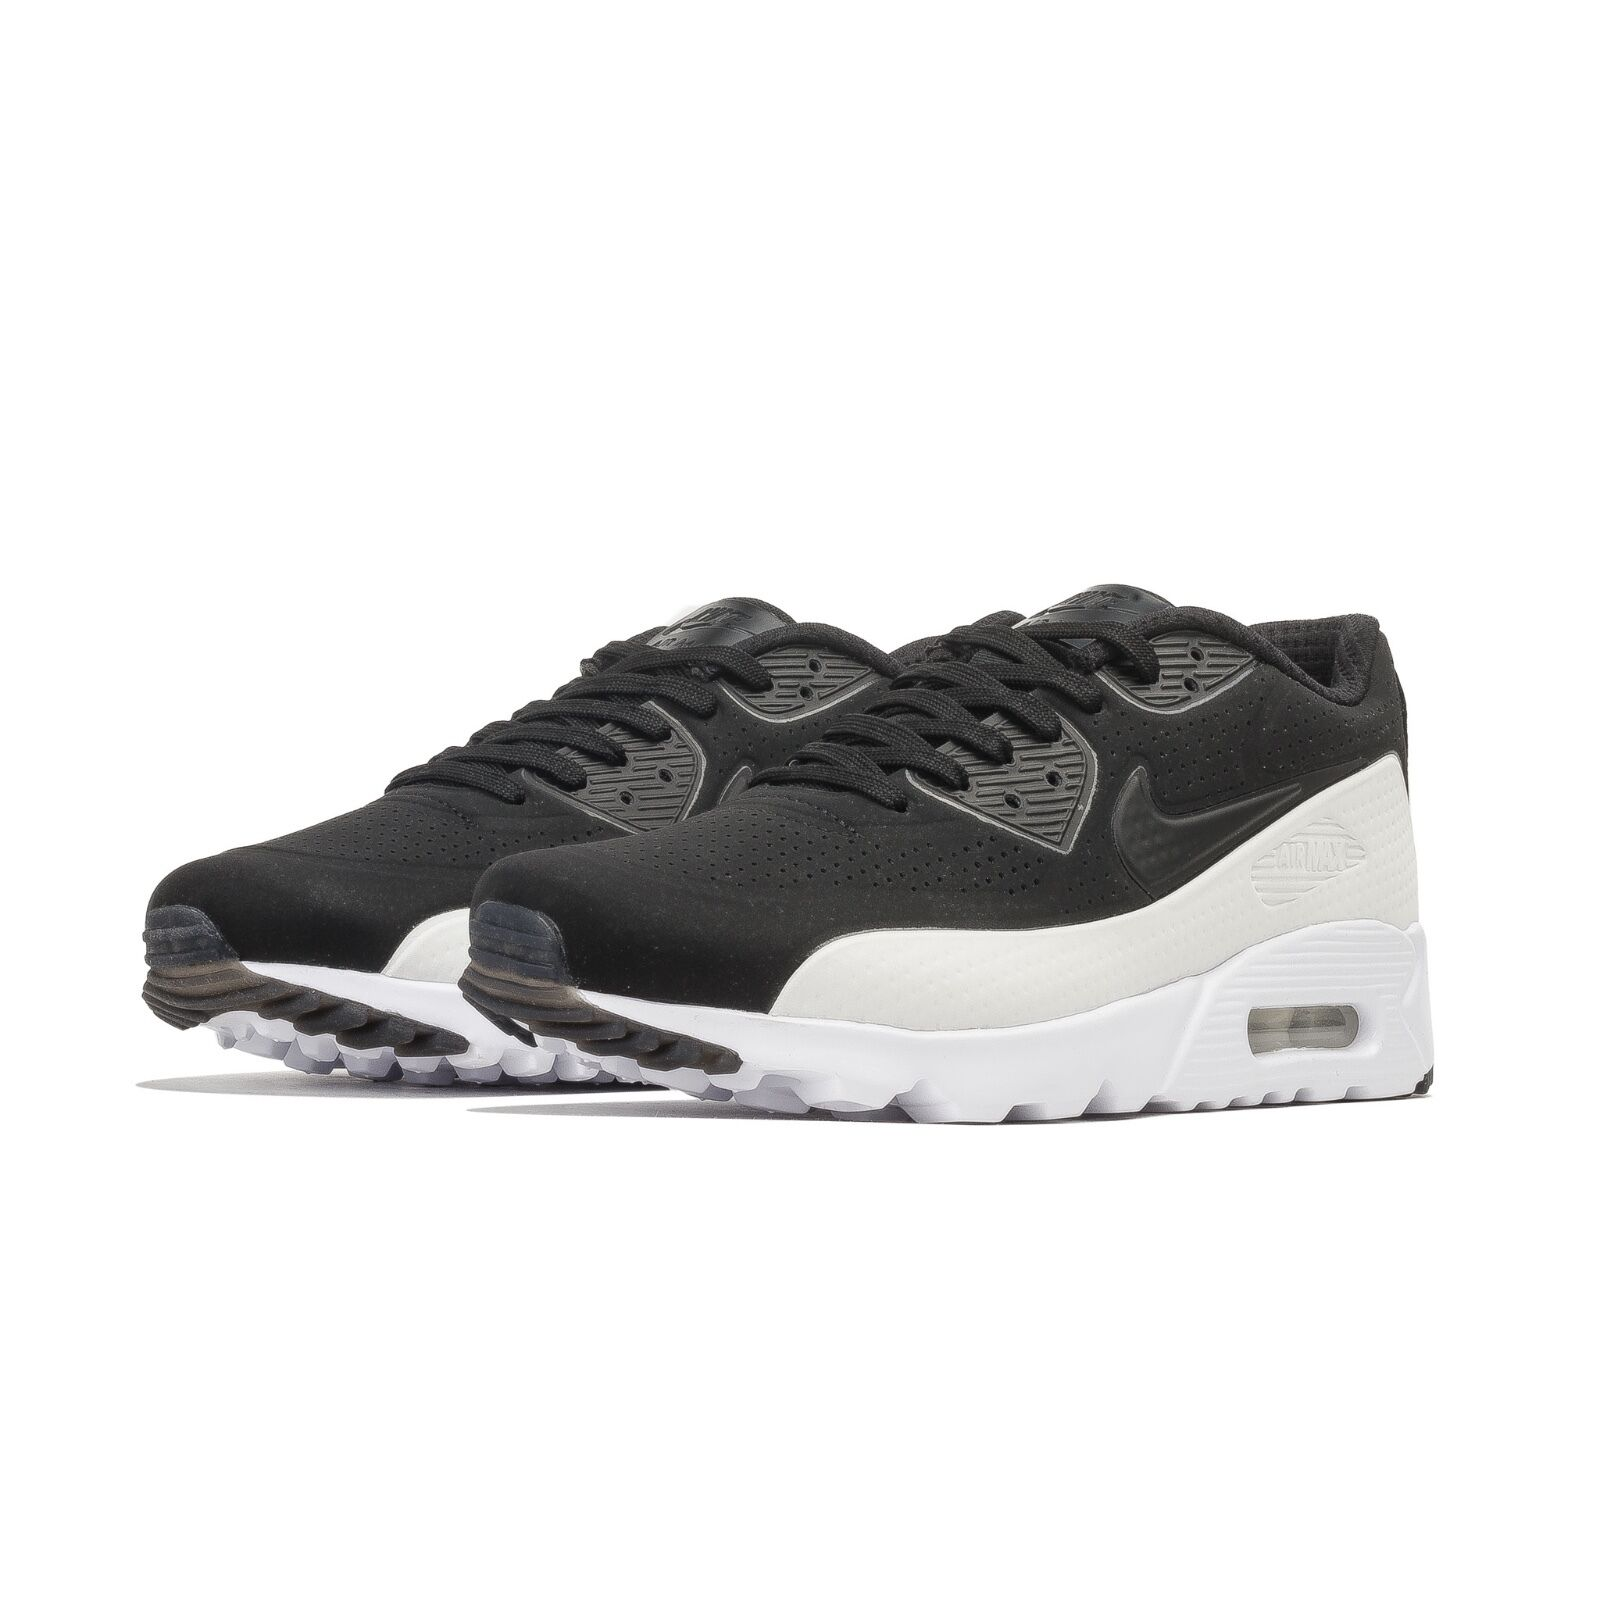 the latest aaa2b c9c82 hot sale 2017 MEN S NIKE AIR MAX 90 ULTRA MOIRE BLACK BLACK WHITE 819477